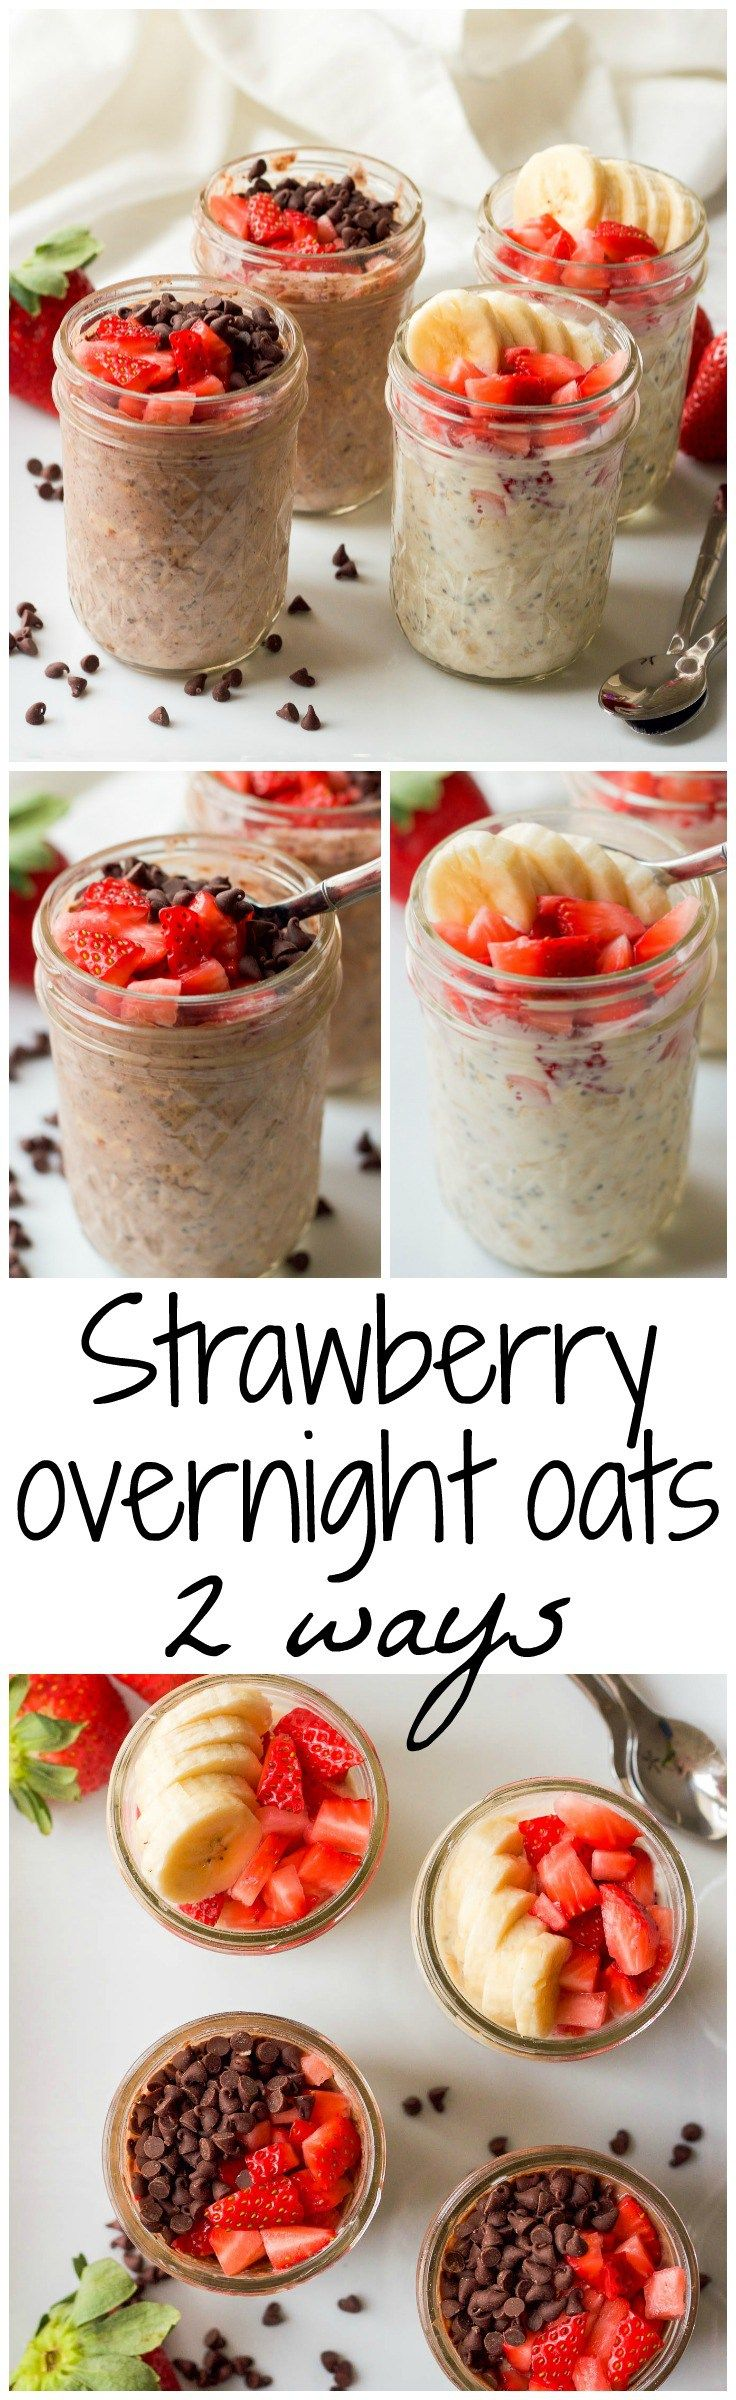 Strawberry overnight oats, 2 ways - An easy, make ahead healthy breakfast! | FamilyFoodontheTable.com